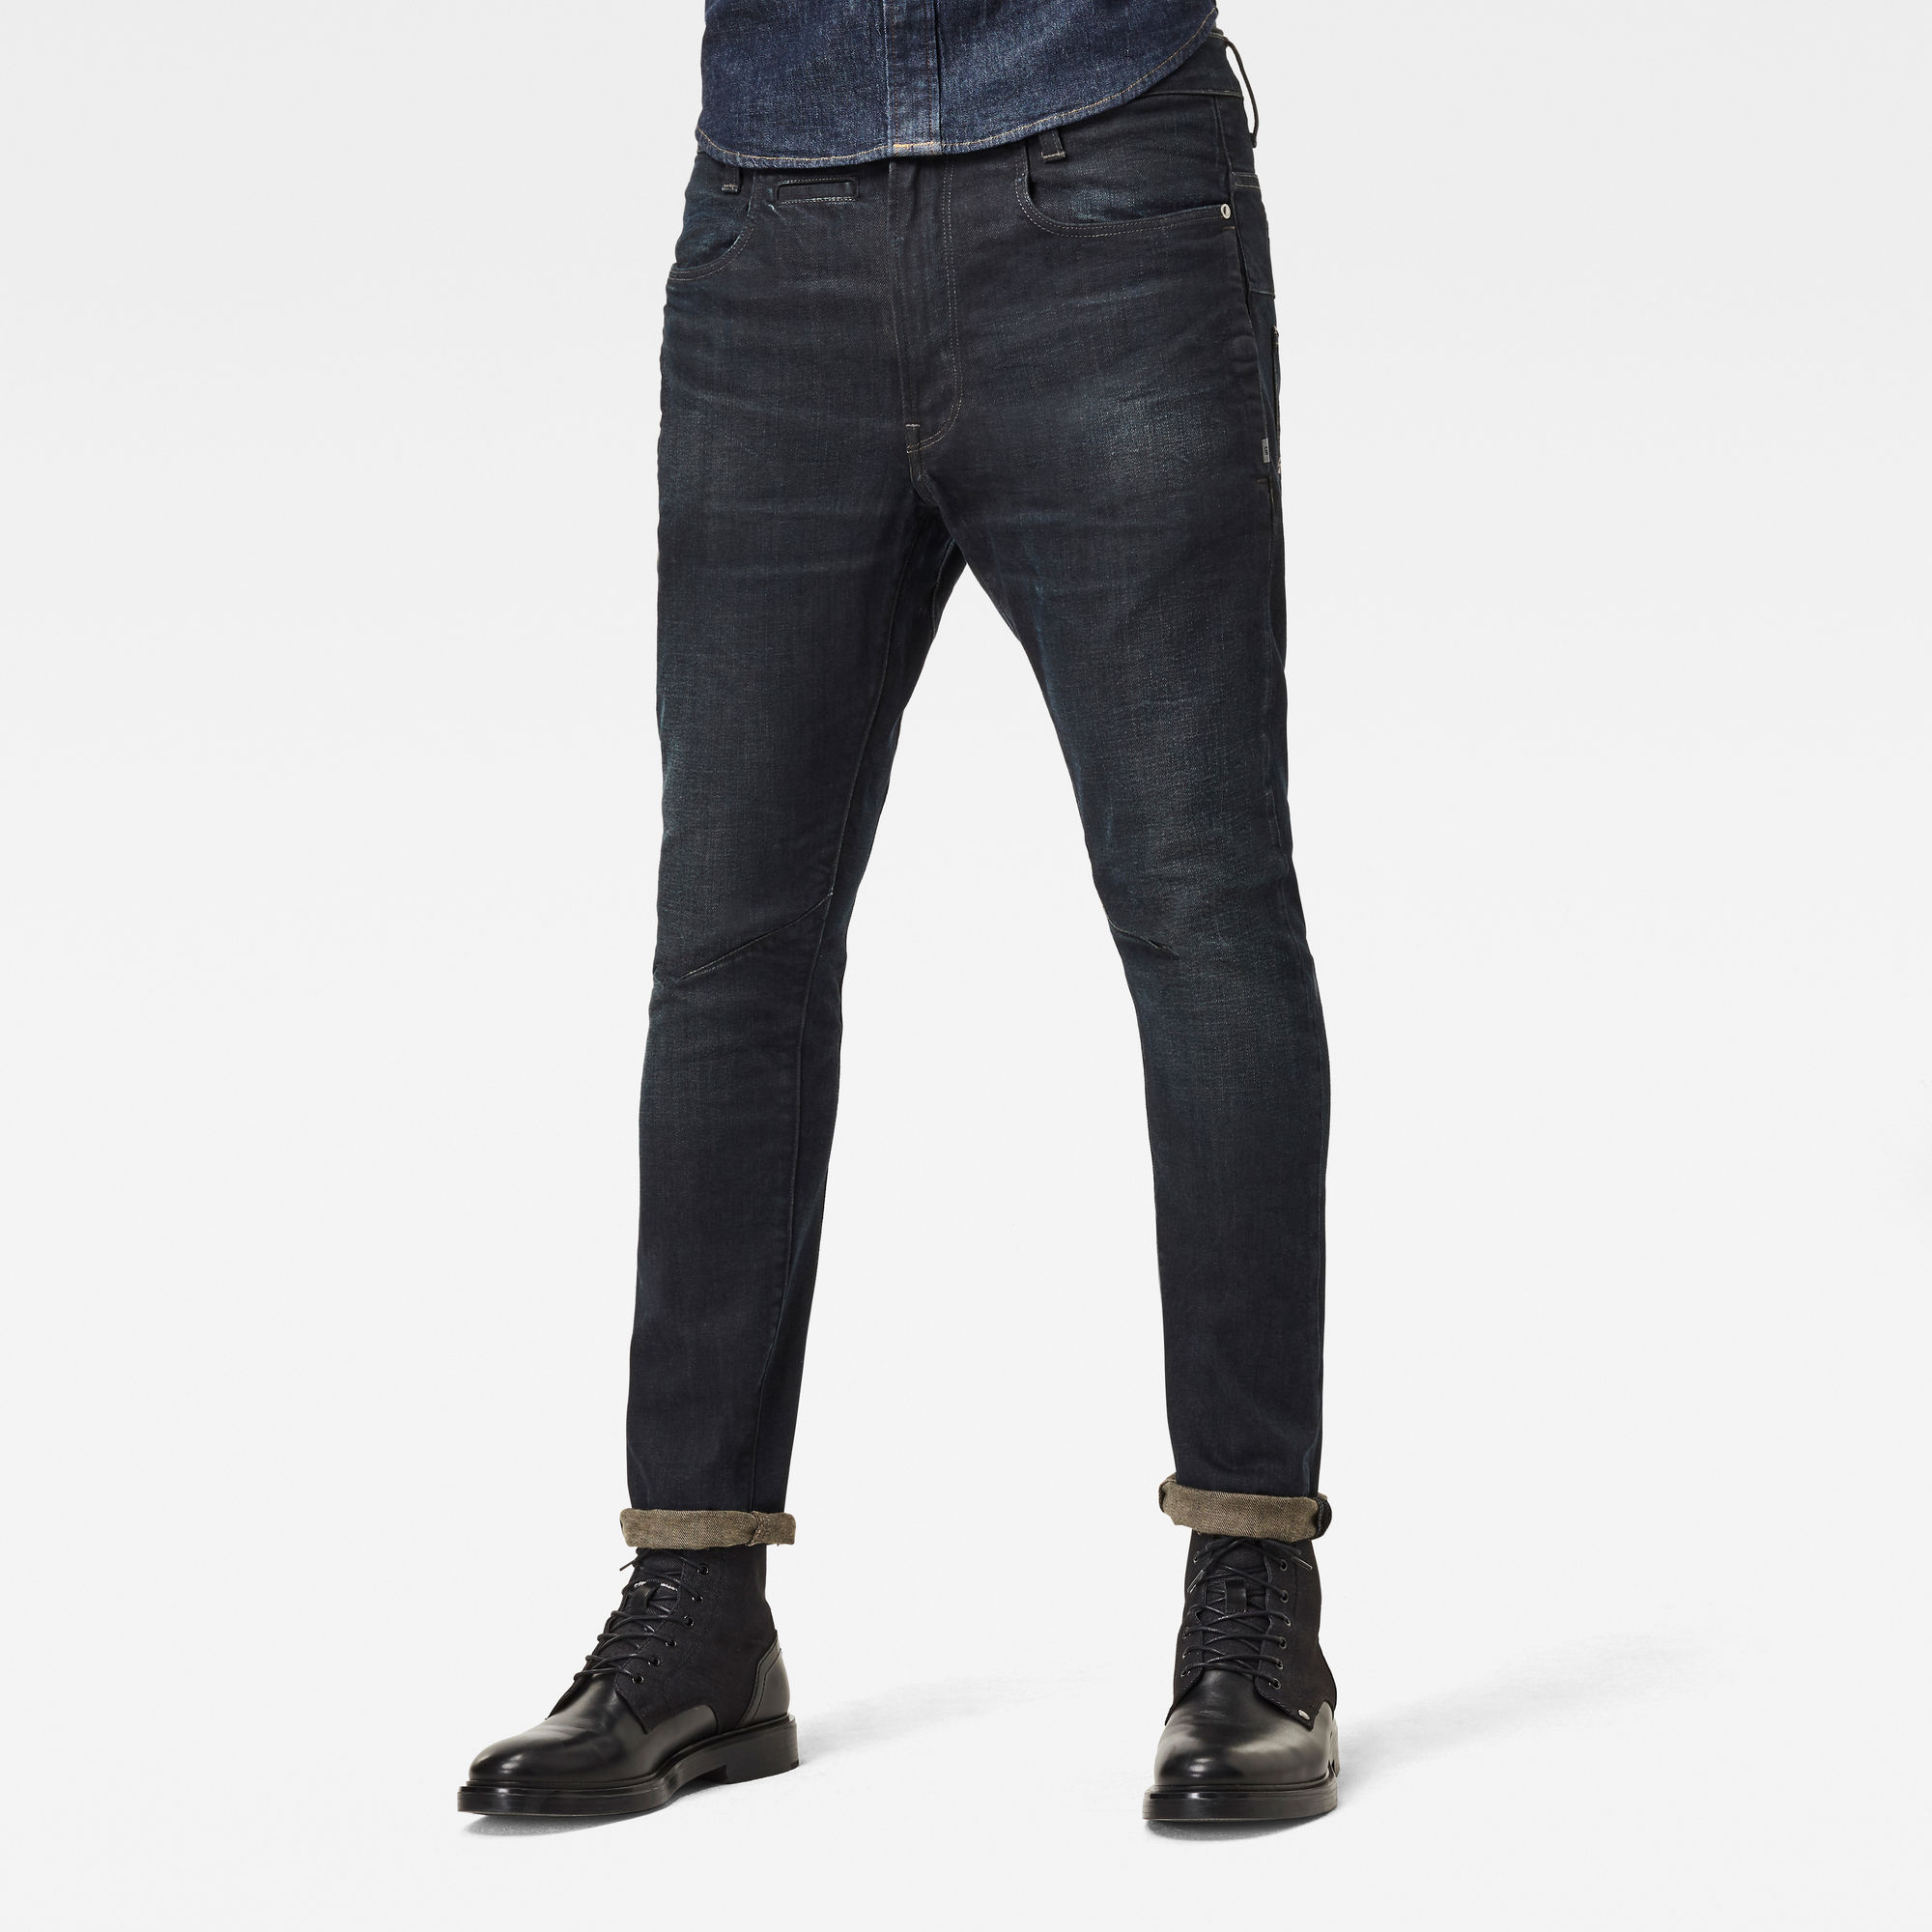 G Star RAW Heren D Staq 3D Slim Wokkie Artwork Donkerblauw